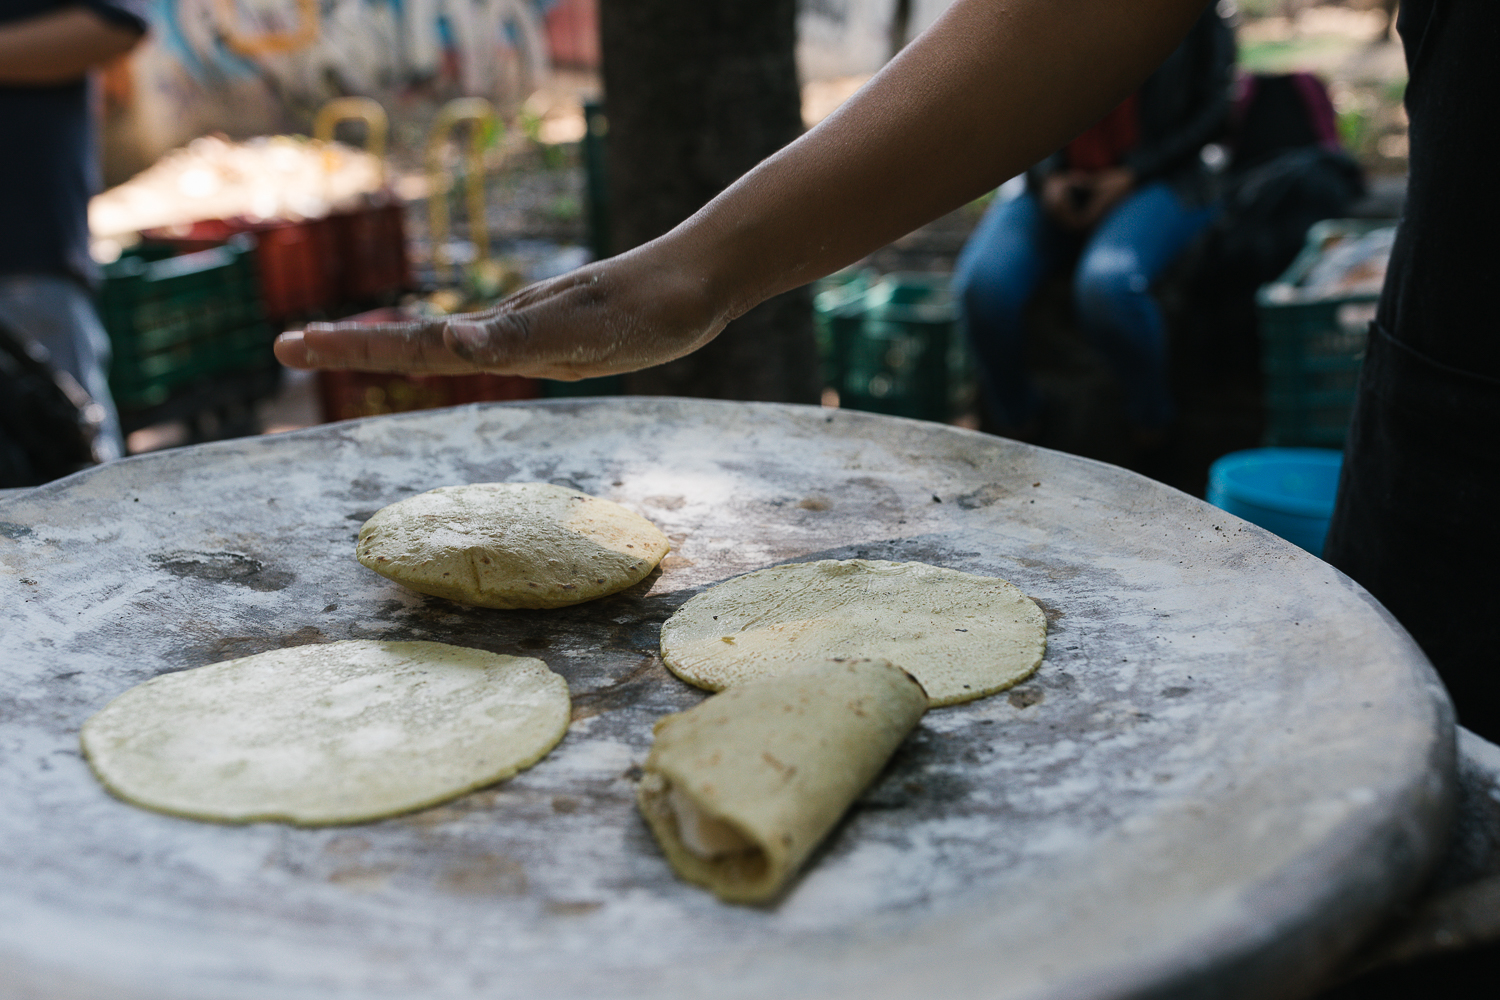 Tortillas on the comal at Mercado el 100